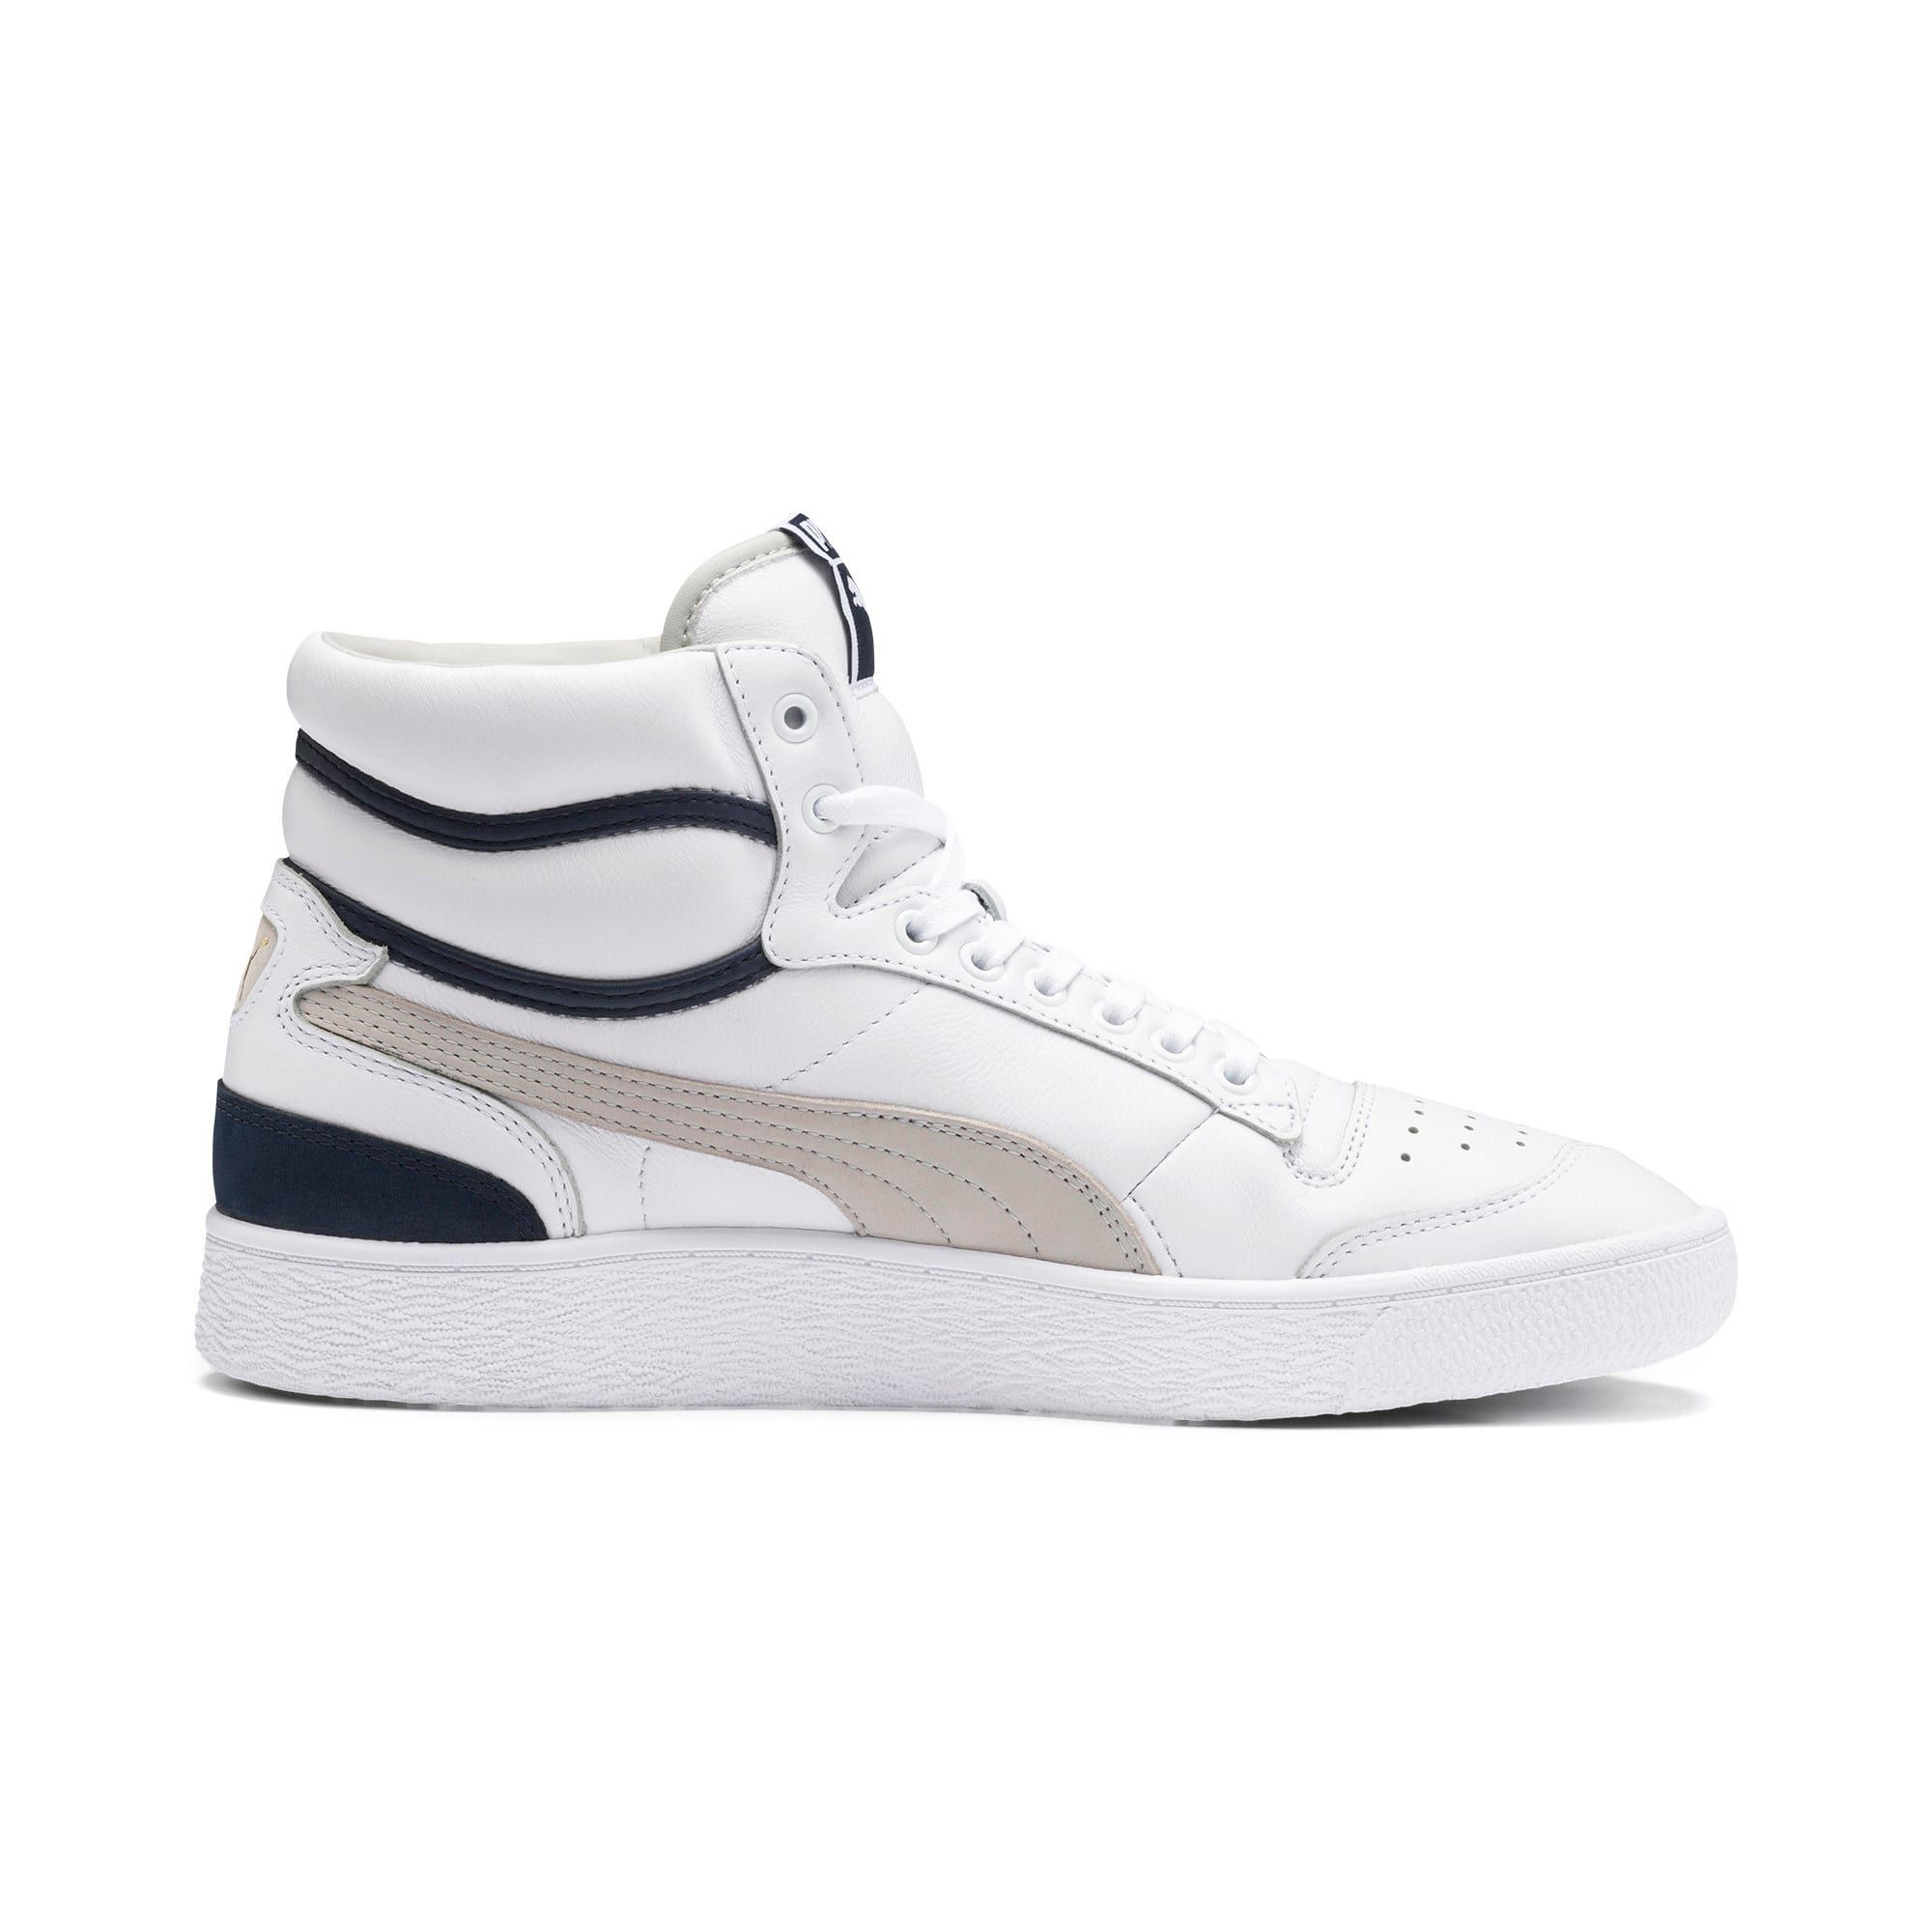 PUMA Ralph Sampson Mid OG Trainers in White/Grey Violet/Peacoat size 10.5